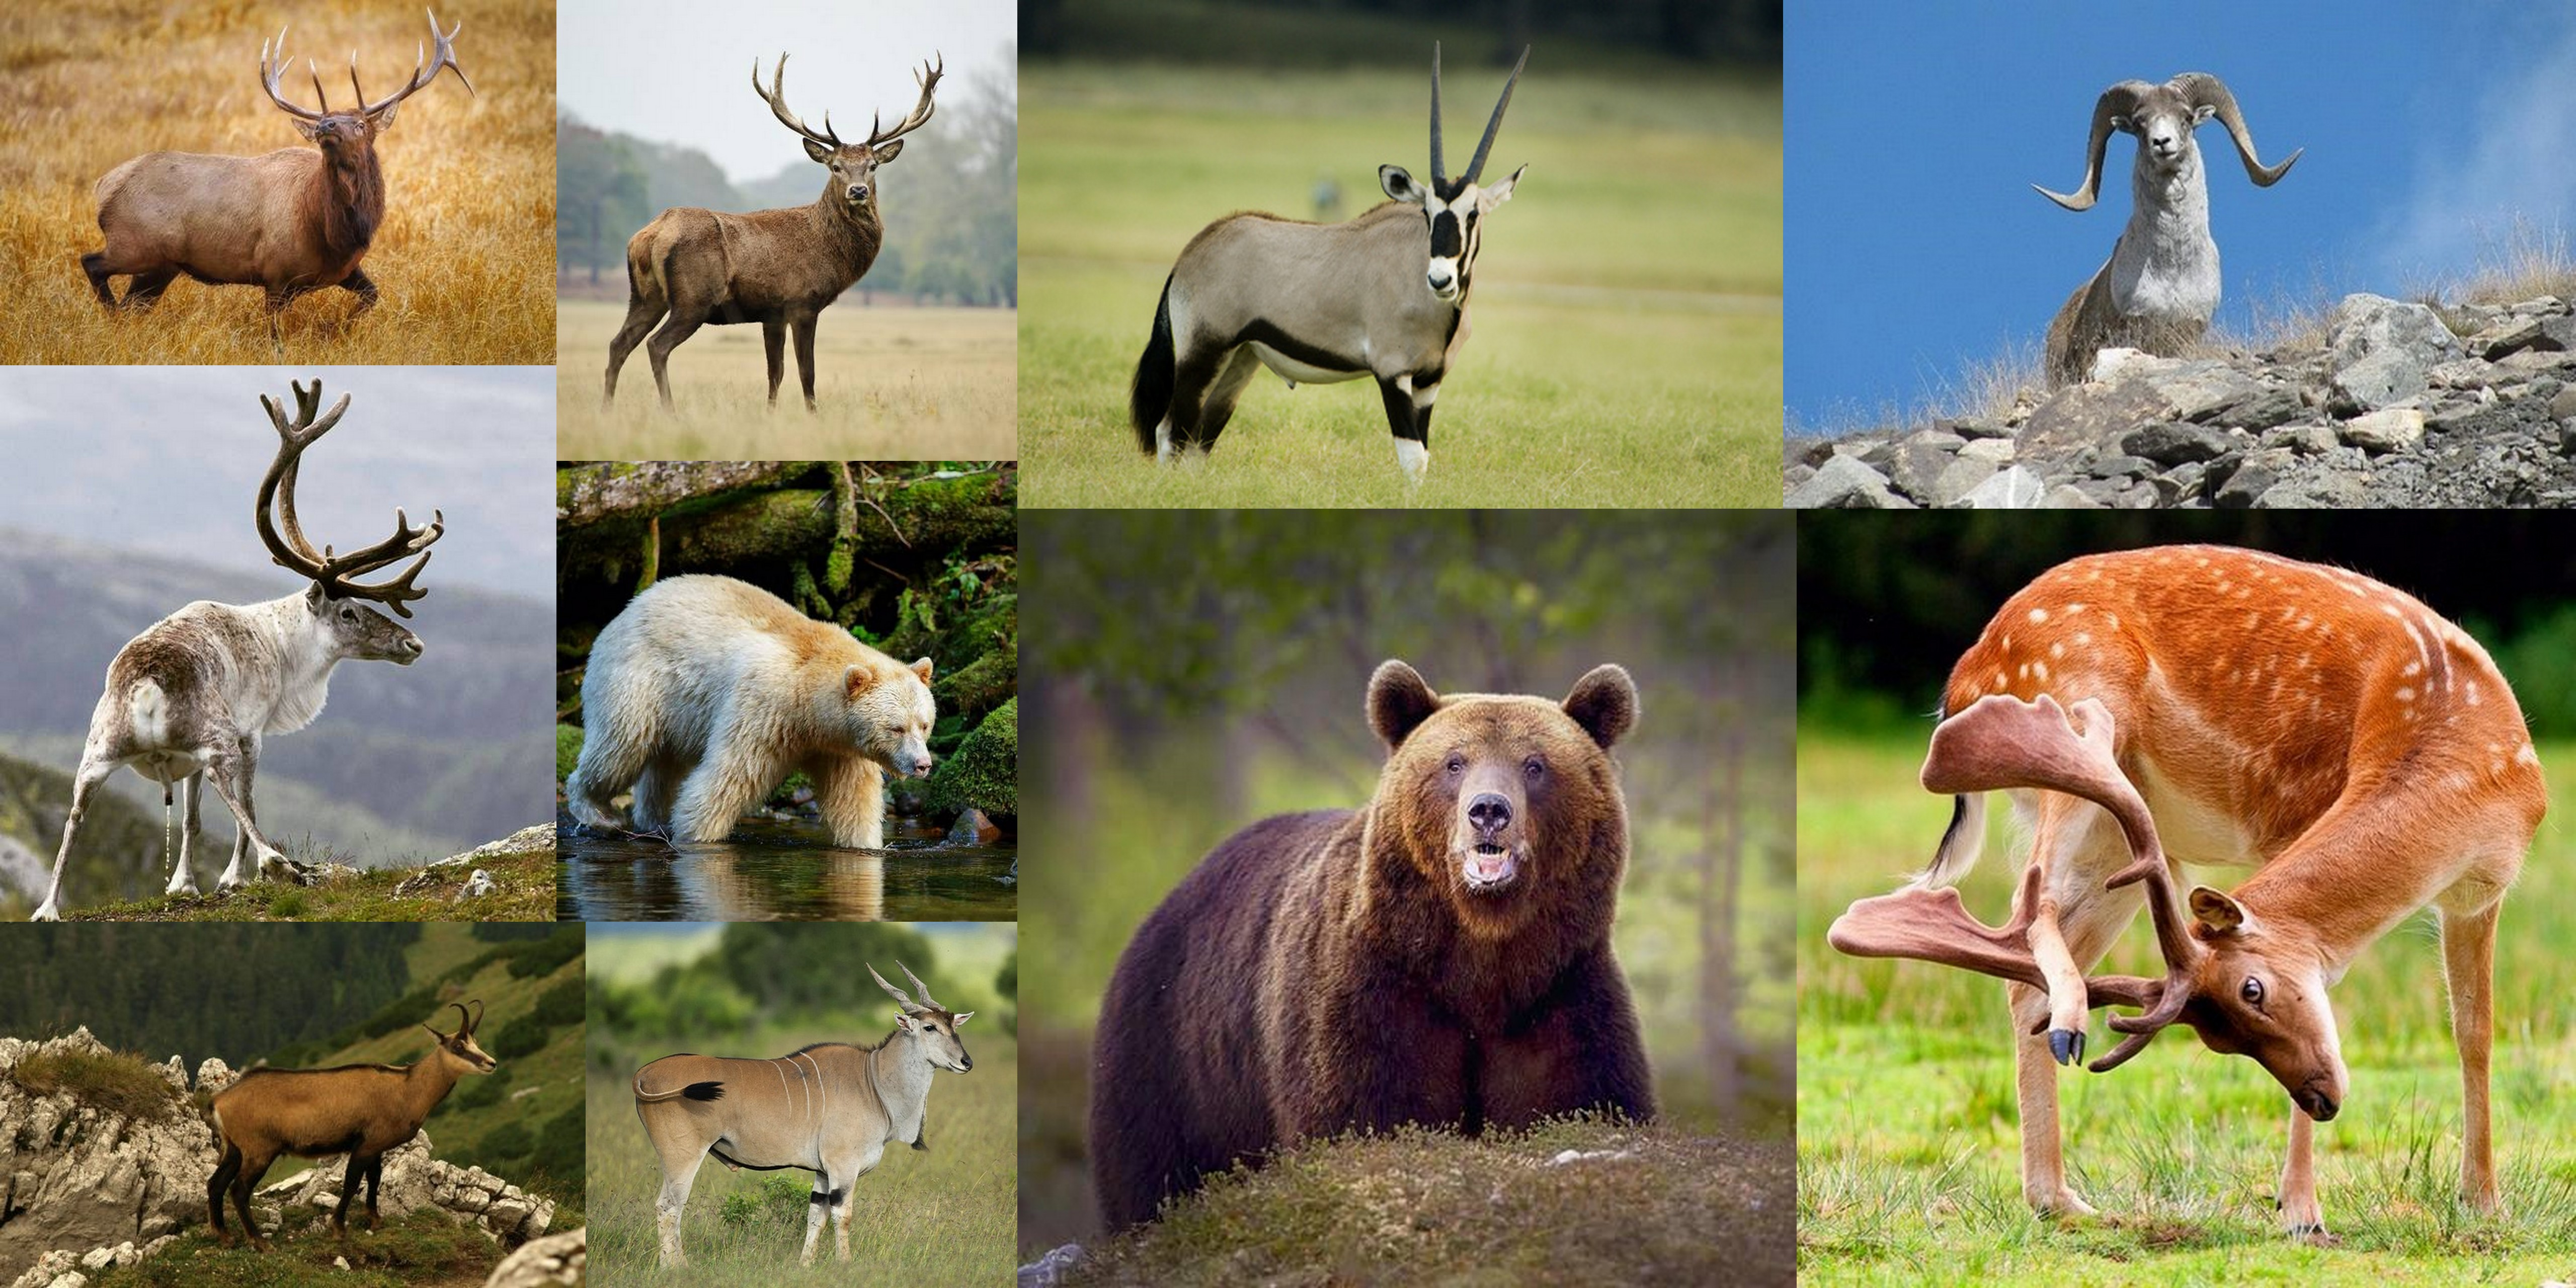 Rifle Woods Deer A Hunting Lesson For The Novice Social Matter To Shoot With Diagram I Have Two Of These Rifles And Lastly Big Game Eg Elk Pronghorn Moose Bear Are Generally Hunted Bolt Action Many Feature More Powerful Or Flatter Shooting